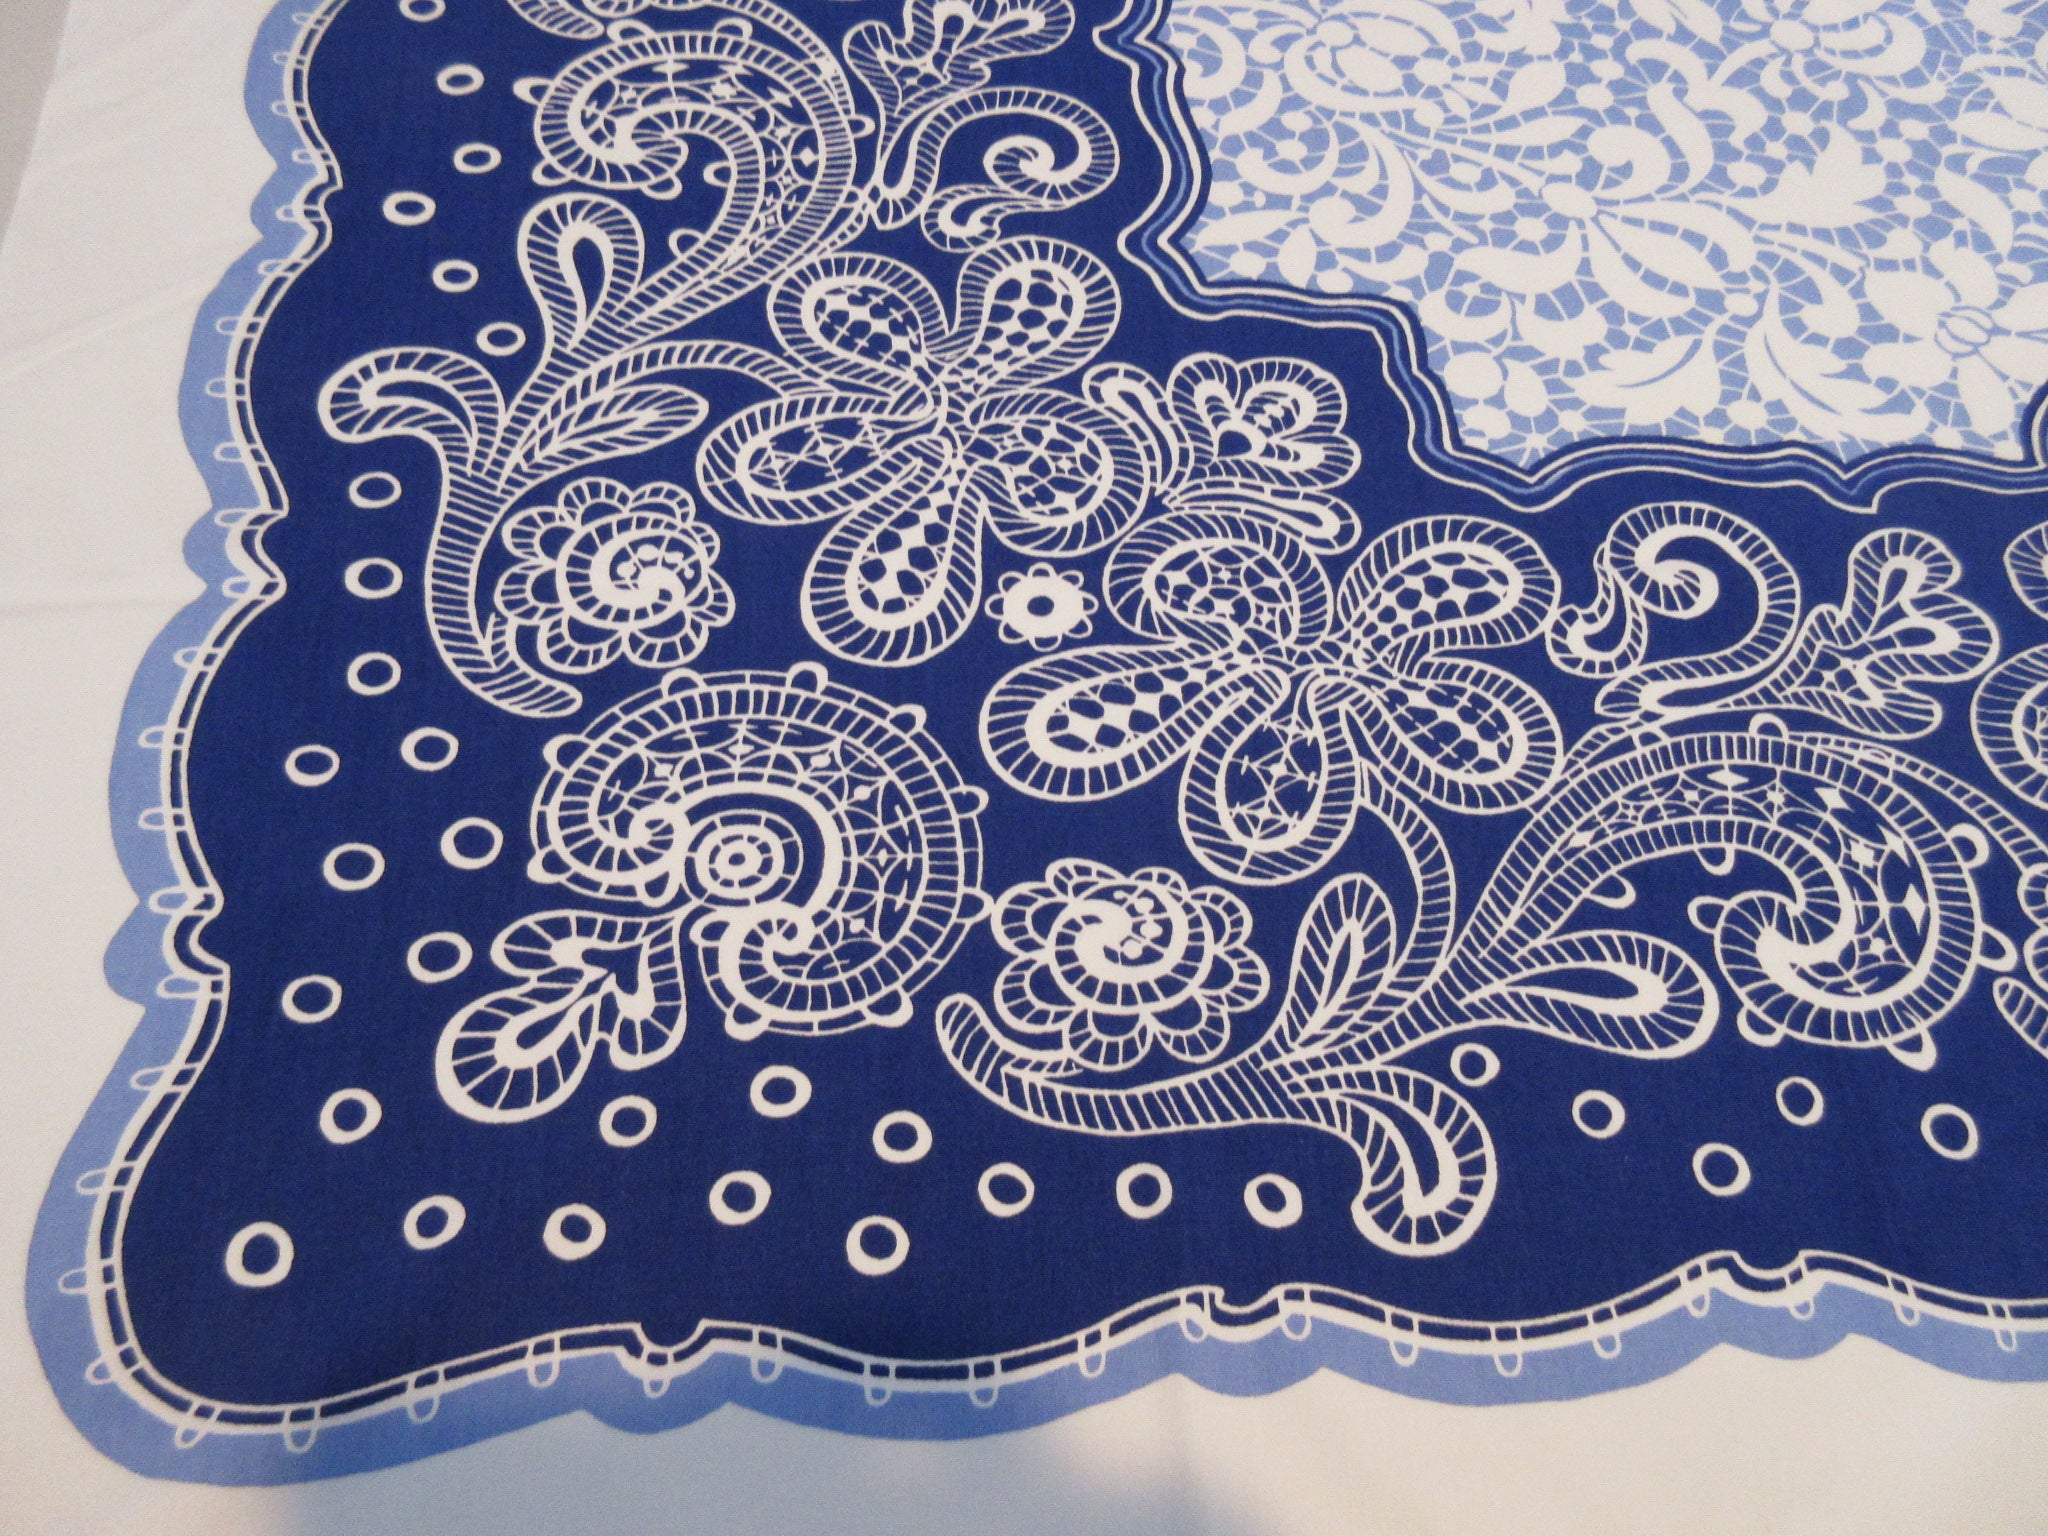 Unusual Bright Blue Lace Floral on Cobalt Vintage Printed Tablecloth (52 X 48)